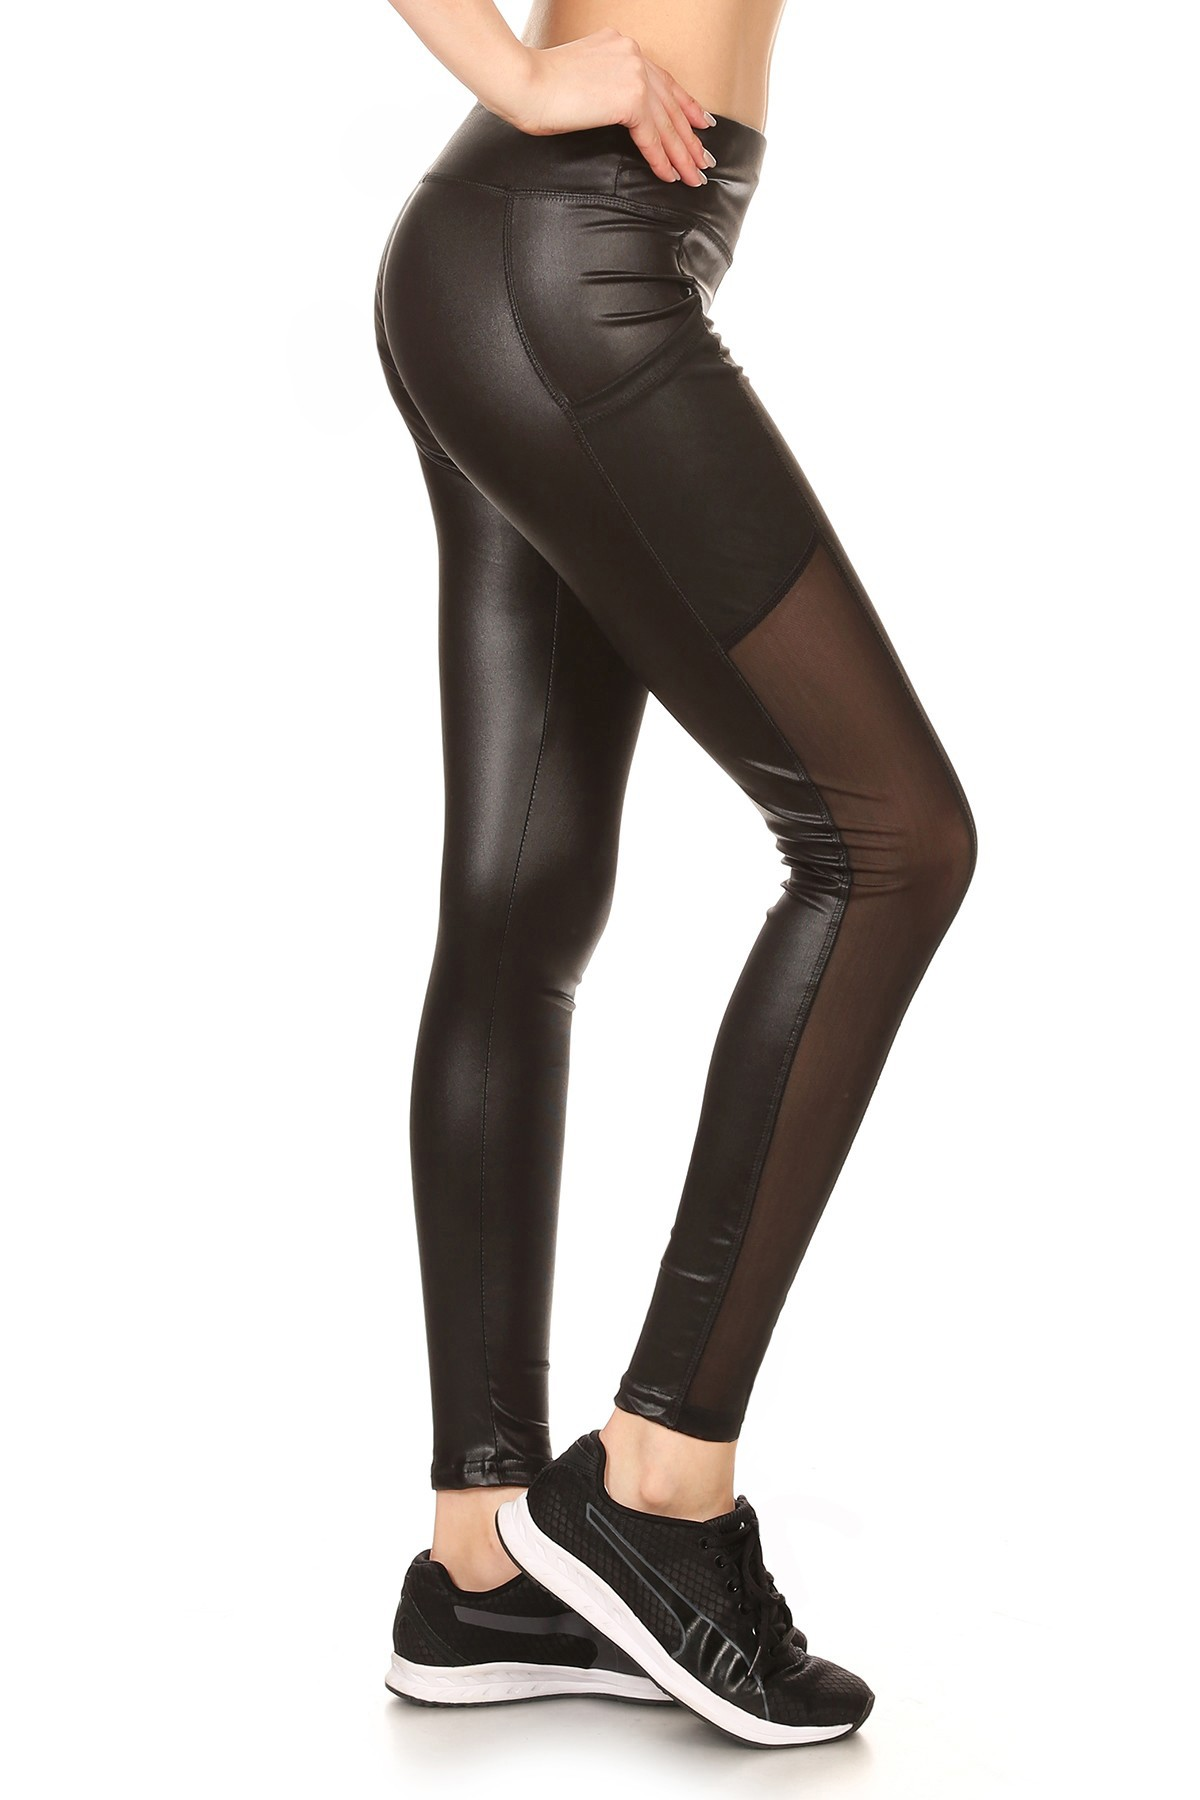 BLACK PU LEGGING WITH MESH SIDE POCKET PANELS #7L95